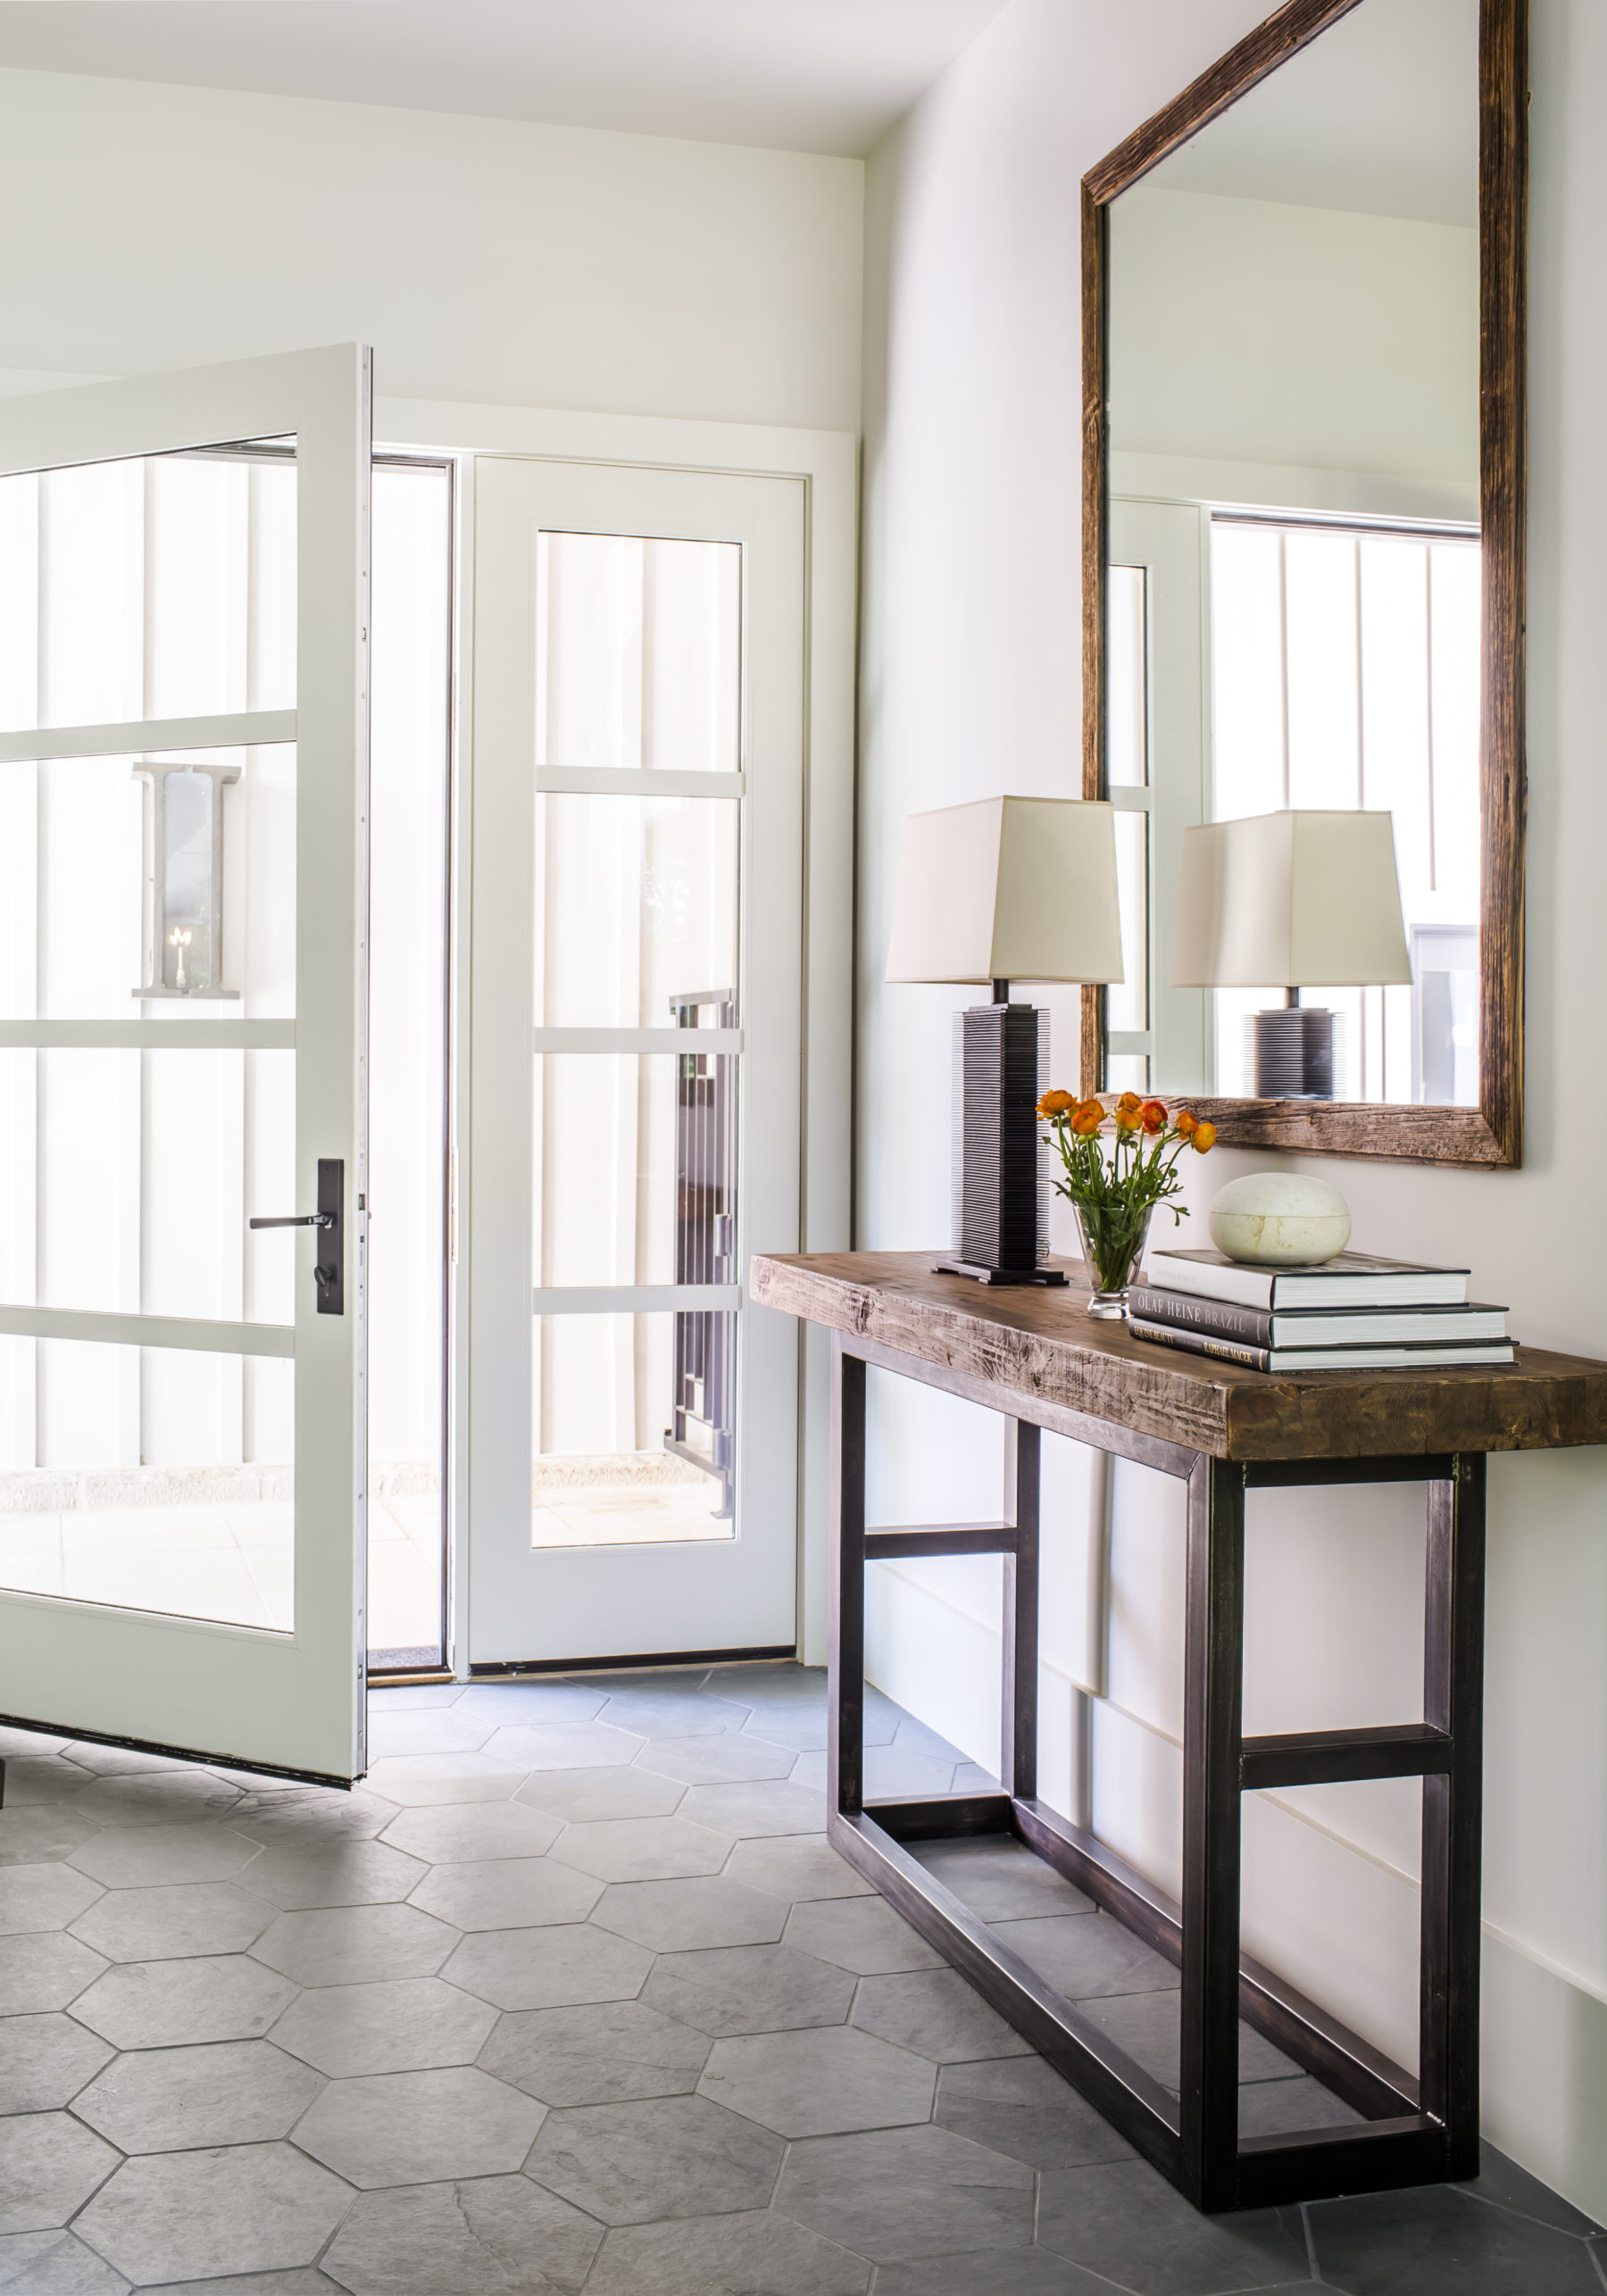 Harrison Design used a glass paned front door and sidelight window to create a sun filled foyer reflected by the mirror